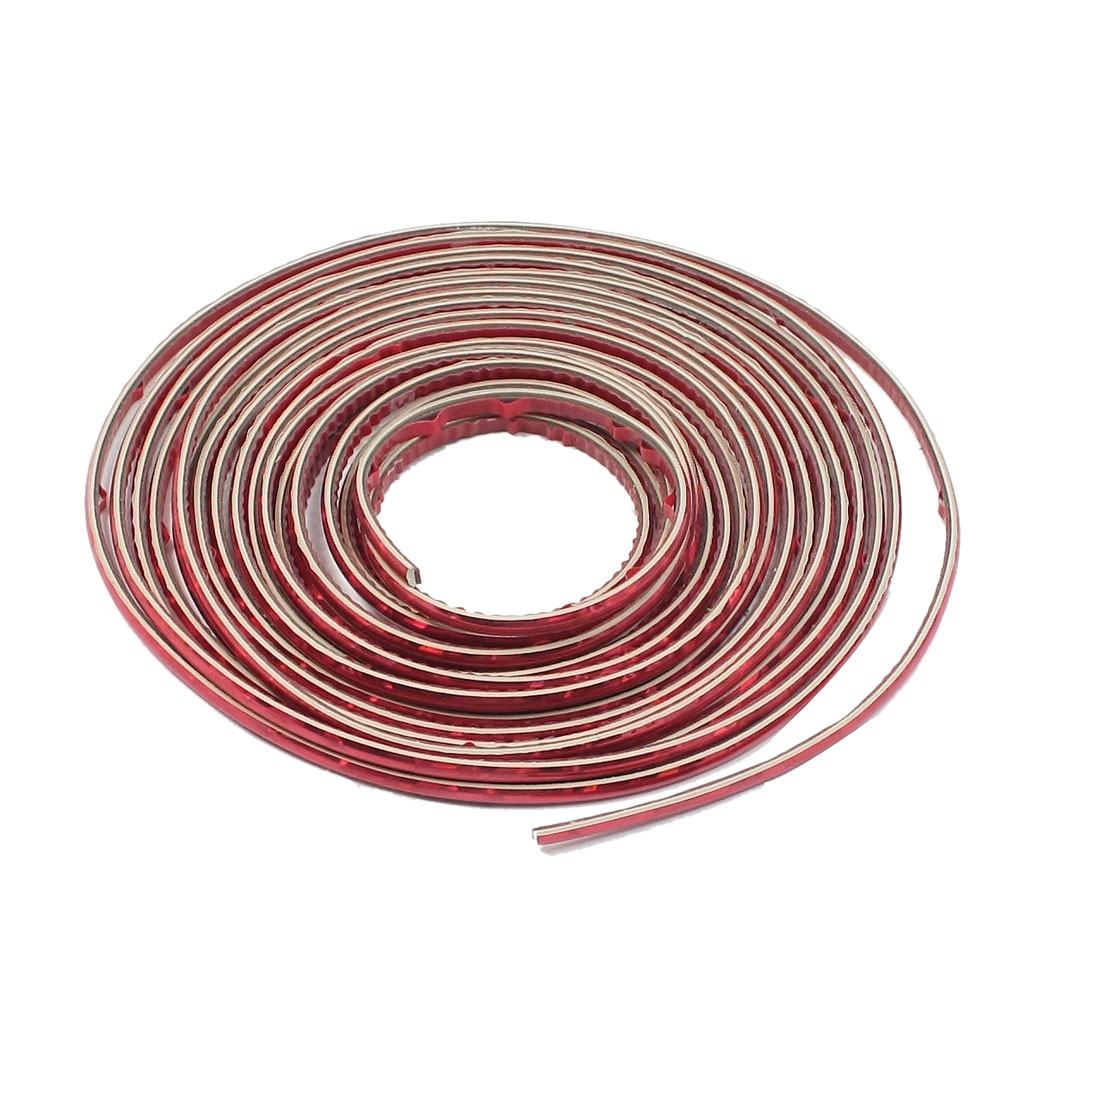 Car Van Interior Exterior Flexible Slim Moulding Trim Strip Glittery Red 5M x 4mm